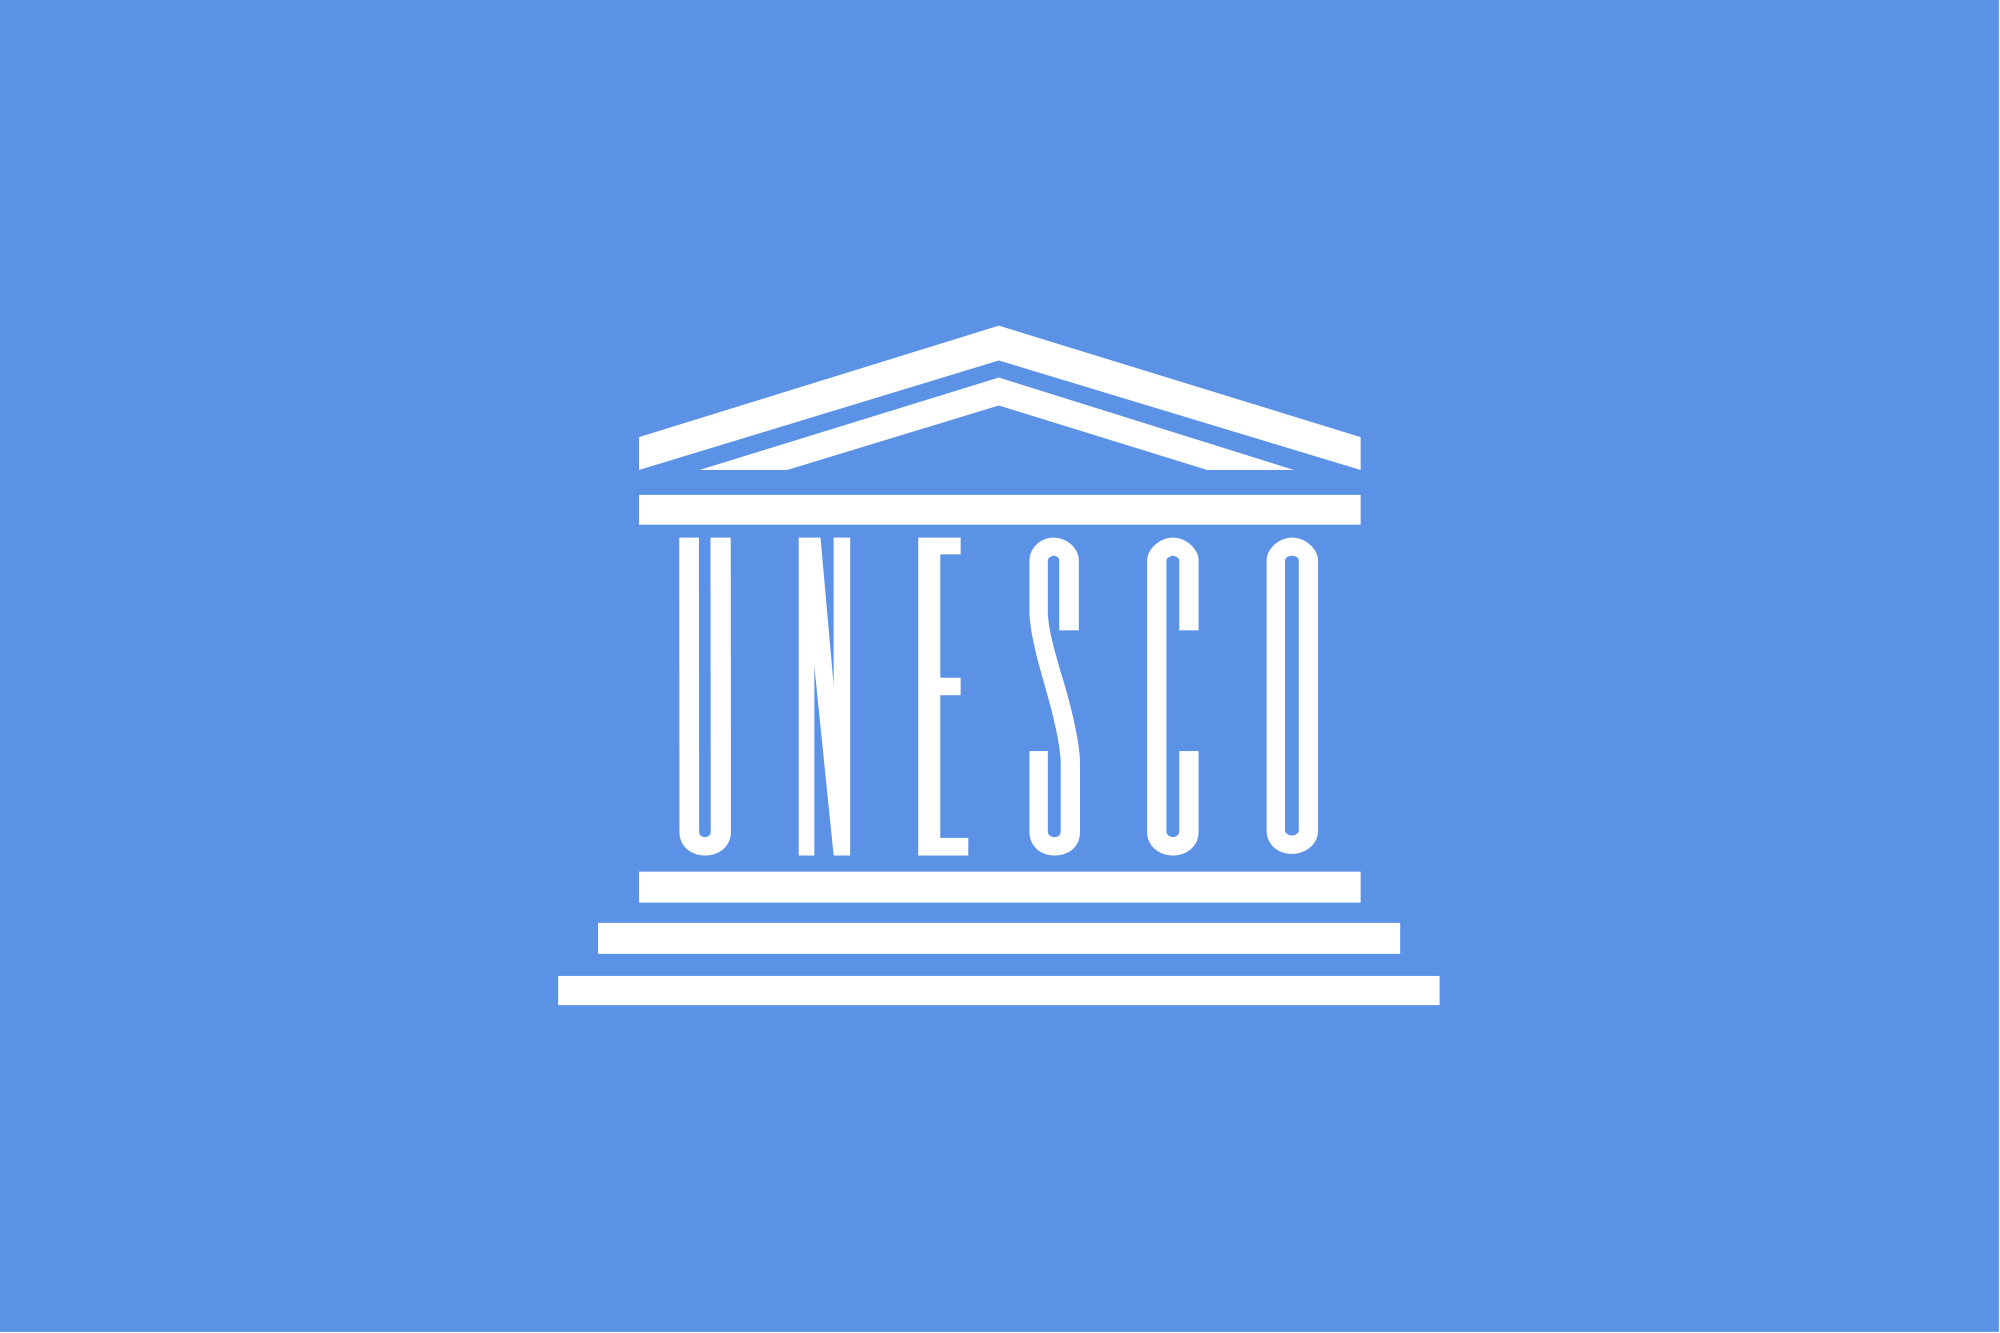 Letter to the Director General of the UNESCO Ms. Irina Bokova